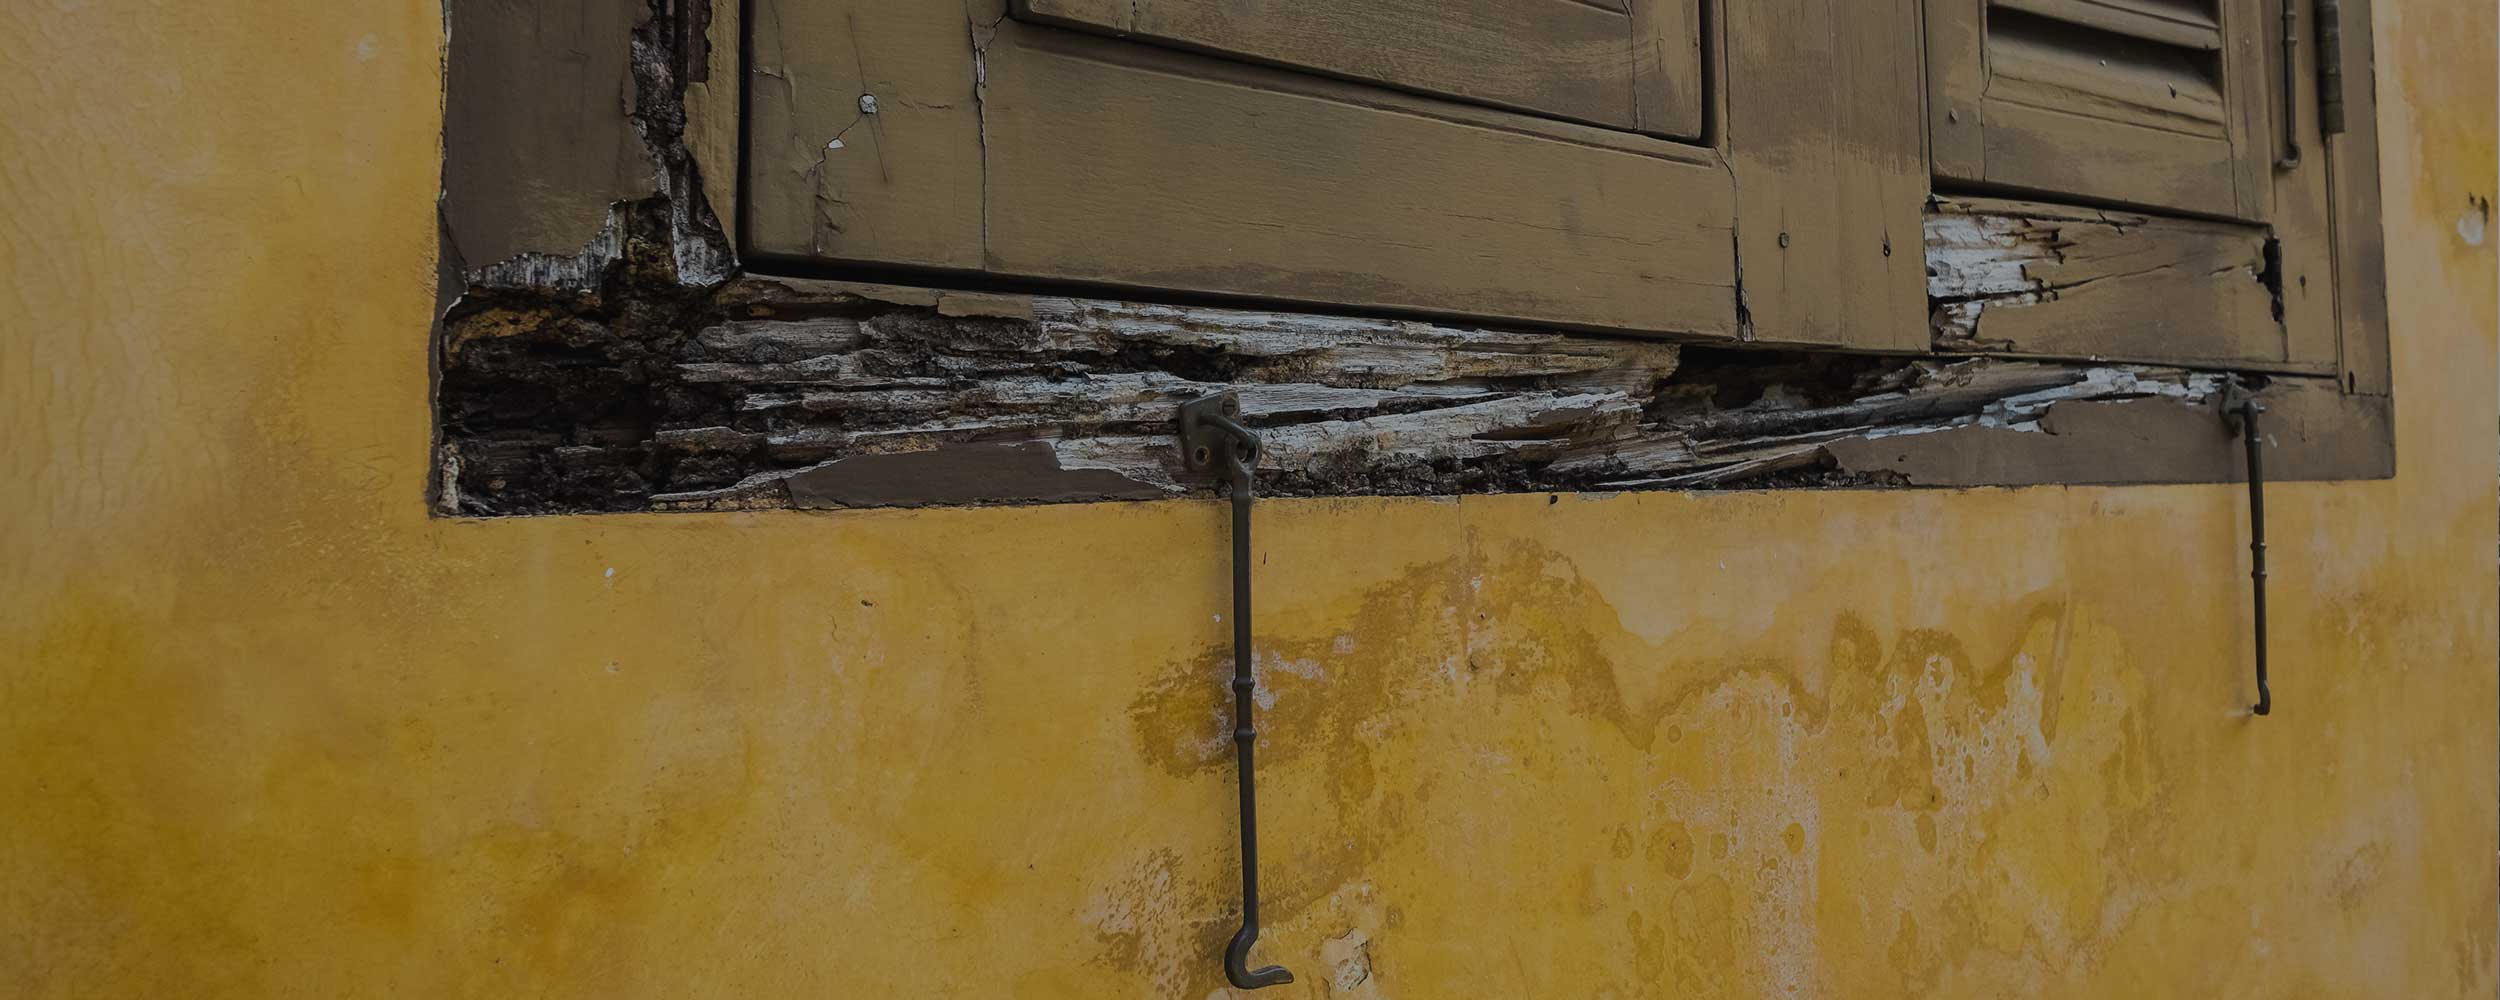 dry rot around a wooden window frame